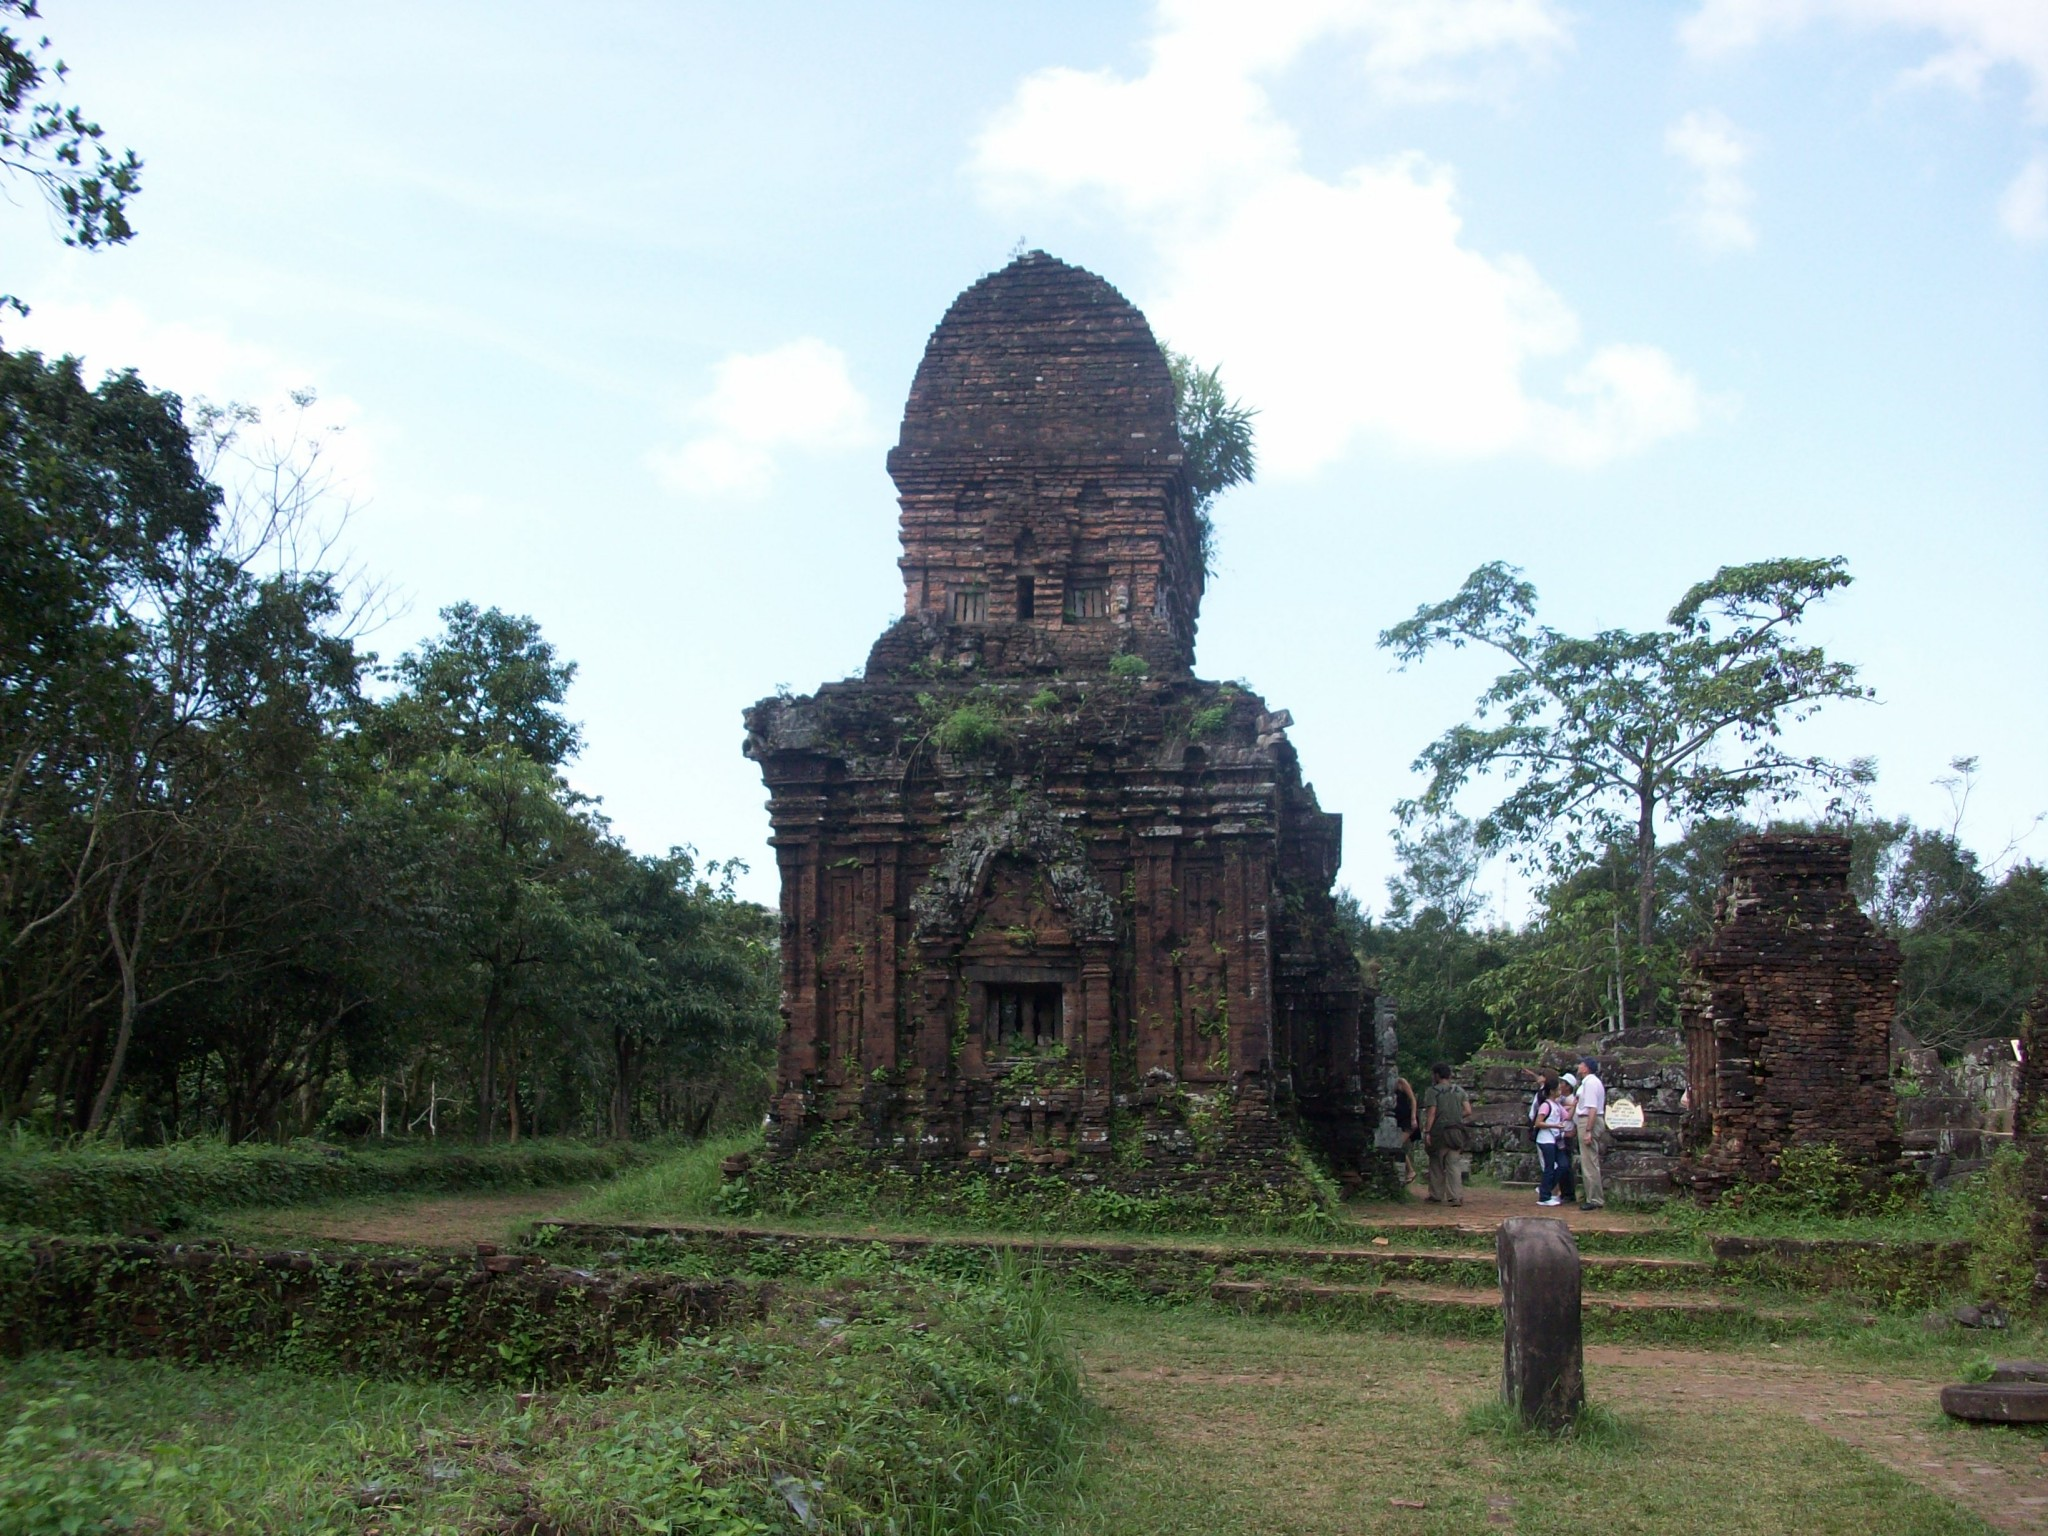 My Son- The Bombed Out Temples of Vietnam